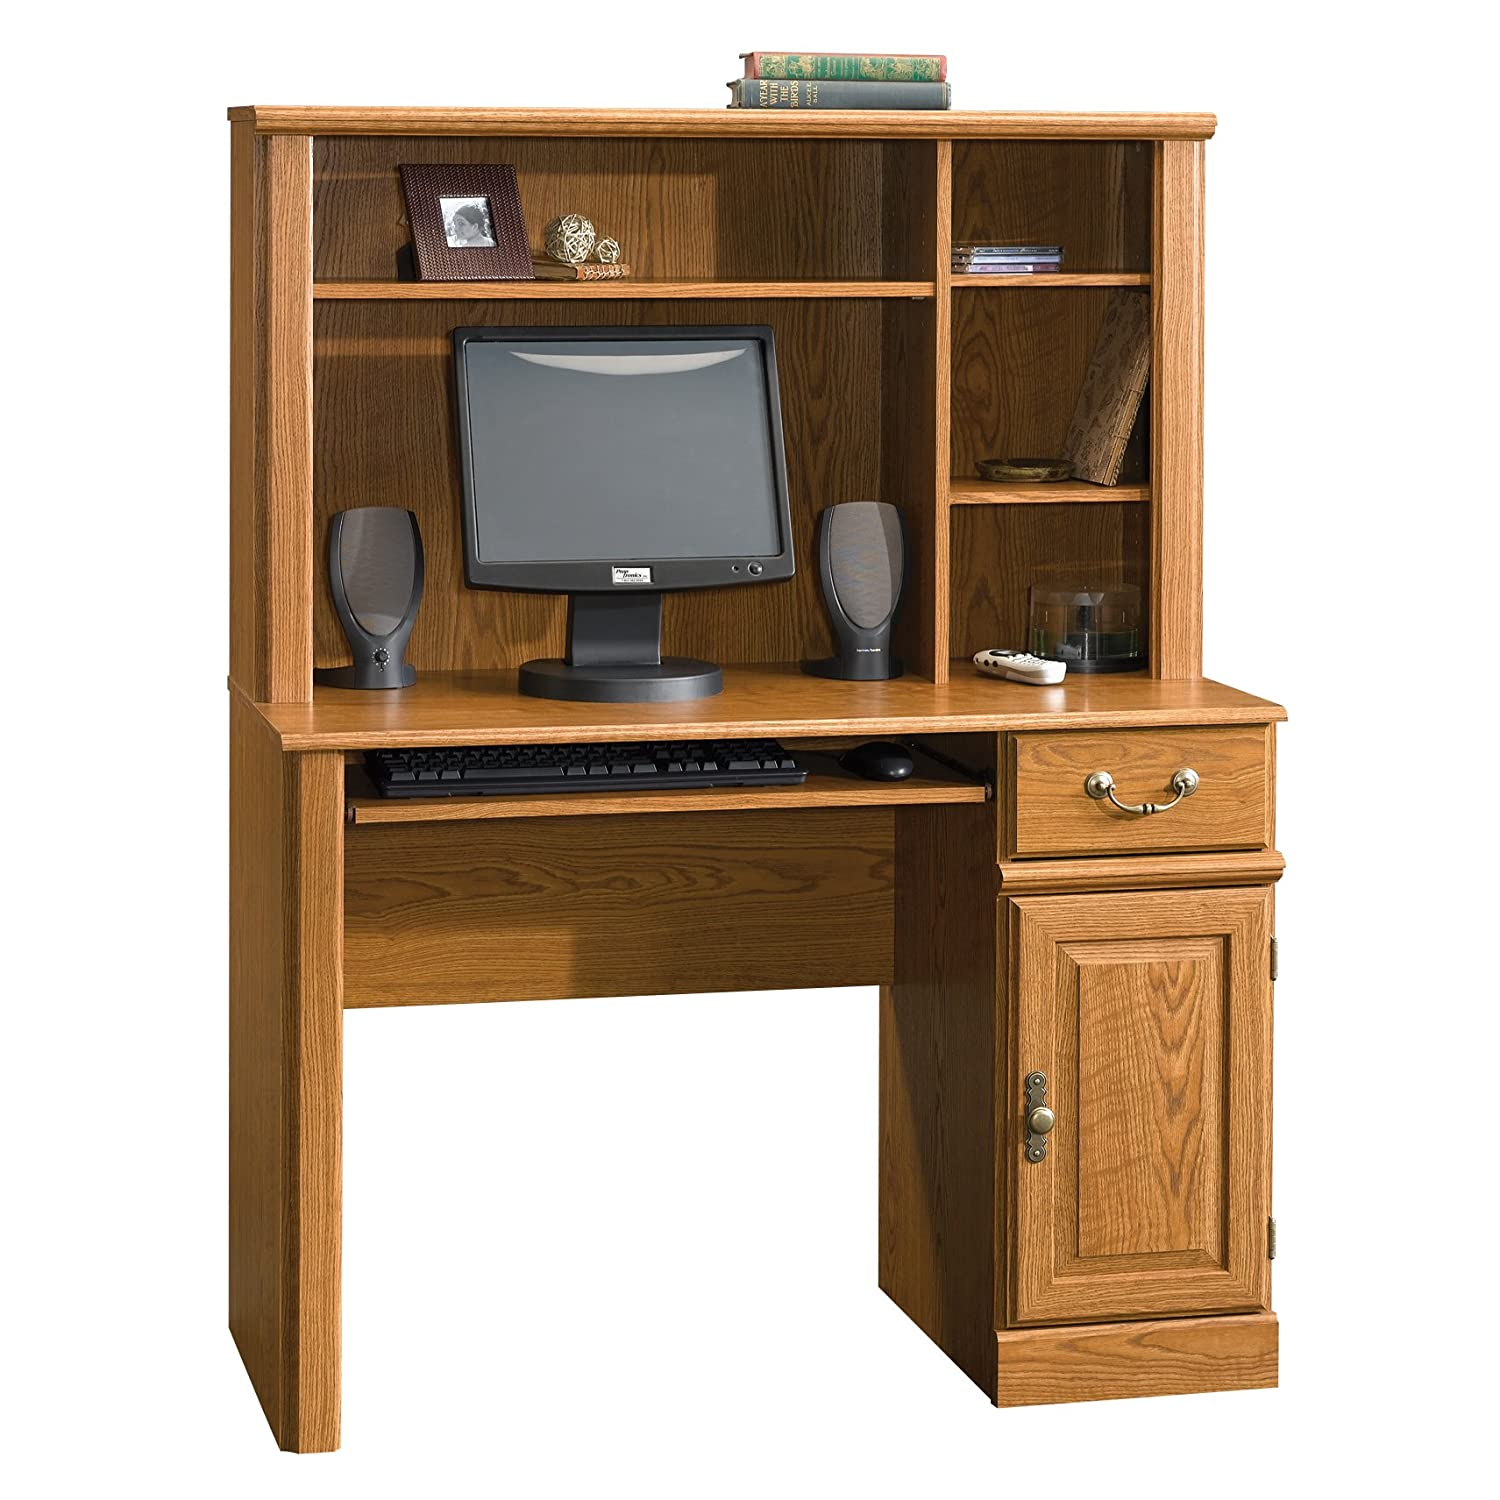 Small Computer Desks For Small Spaces - PC Build Advisor